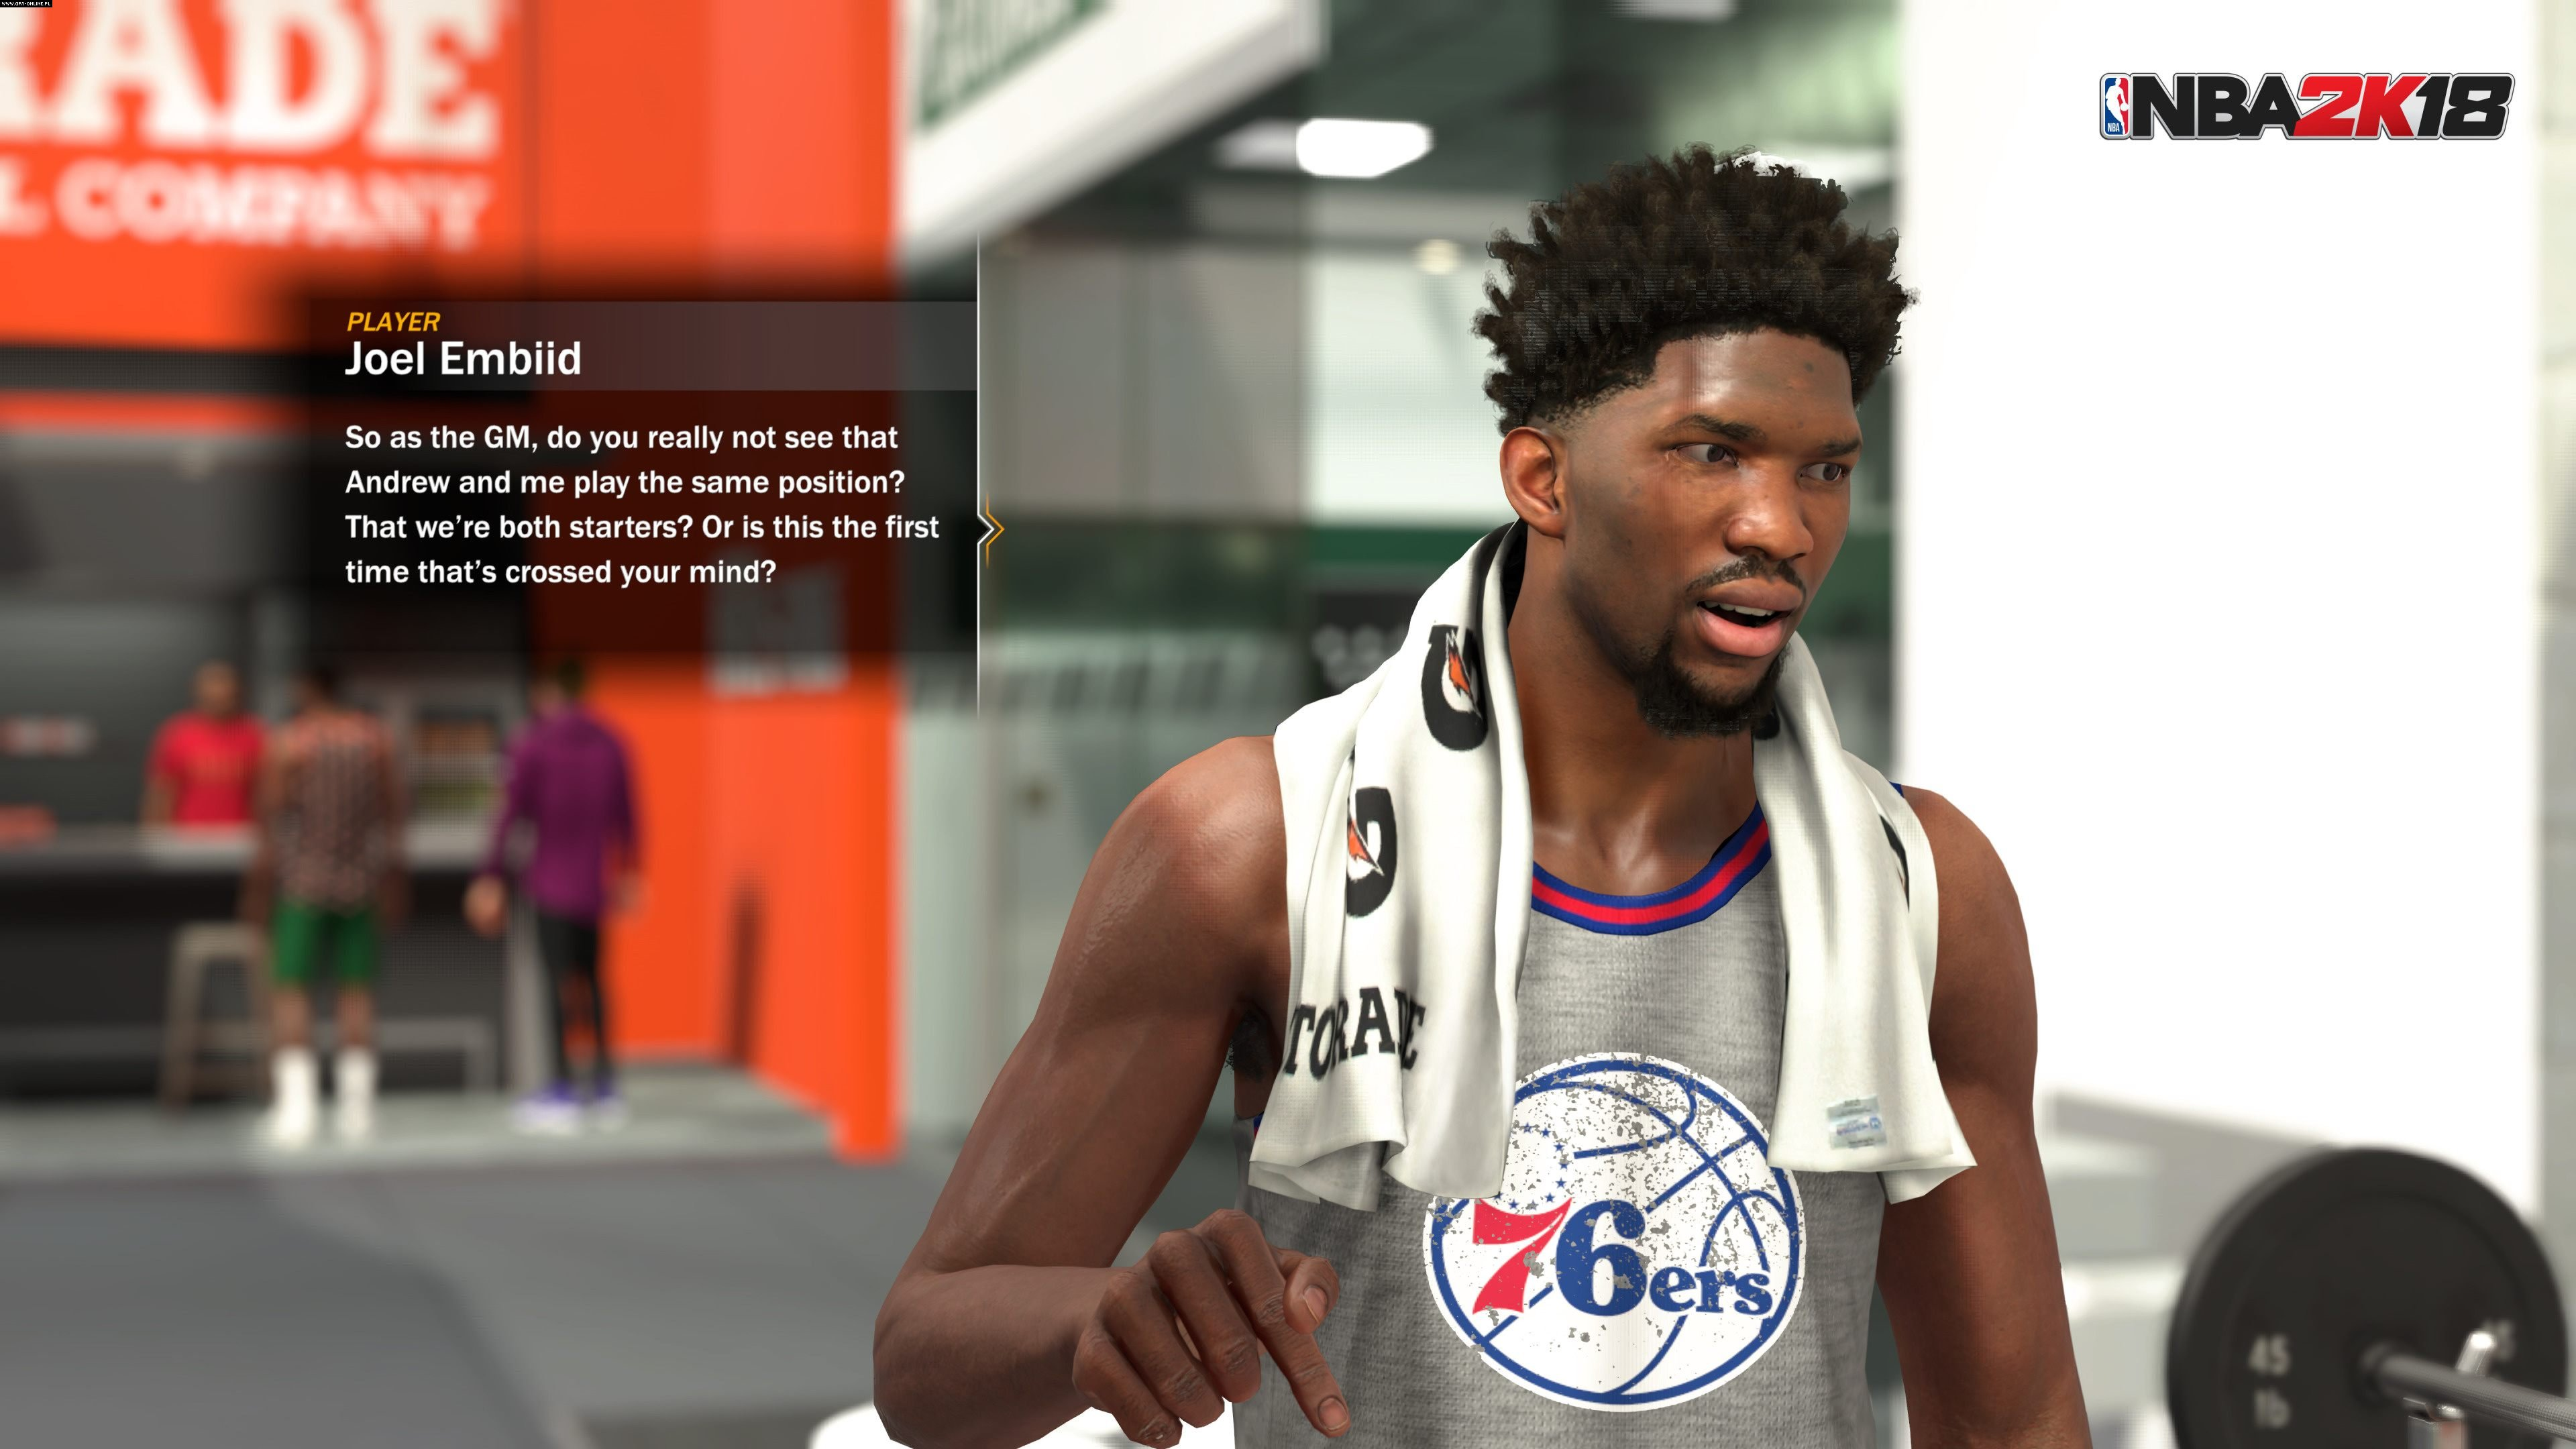 NBA 2K18 PC, PS4, XONE Games Image 6/19, Visual Concepts, 2K Games